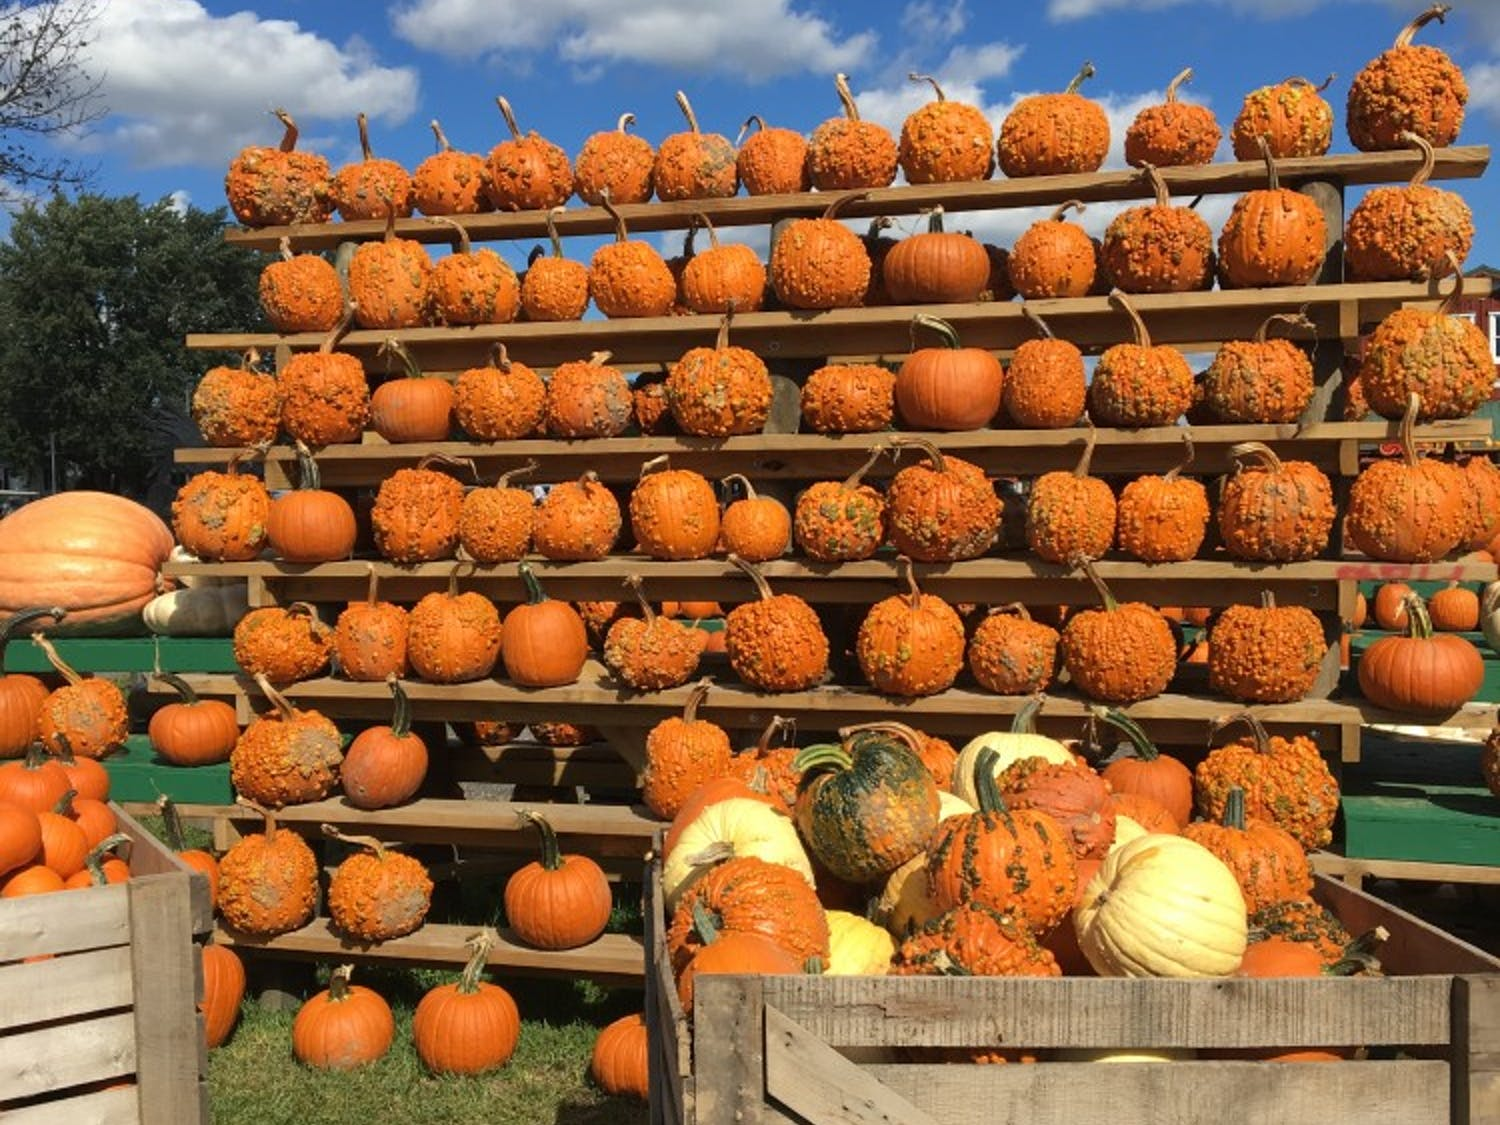 The Great Pumpkin Farm celebrates its fourth week into the festival. The festival features an abundance of food and entertainment, and of course a ridiculous amount of pumpkins.